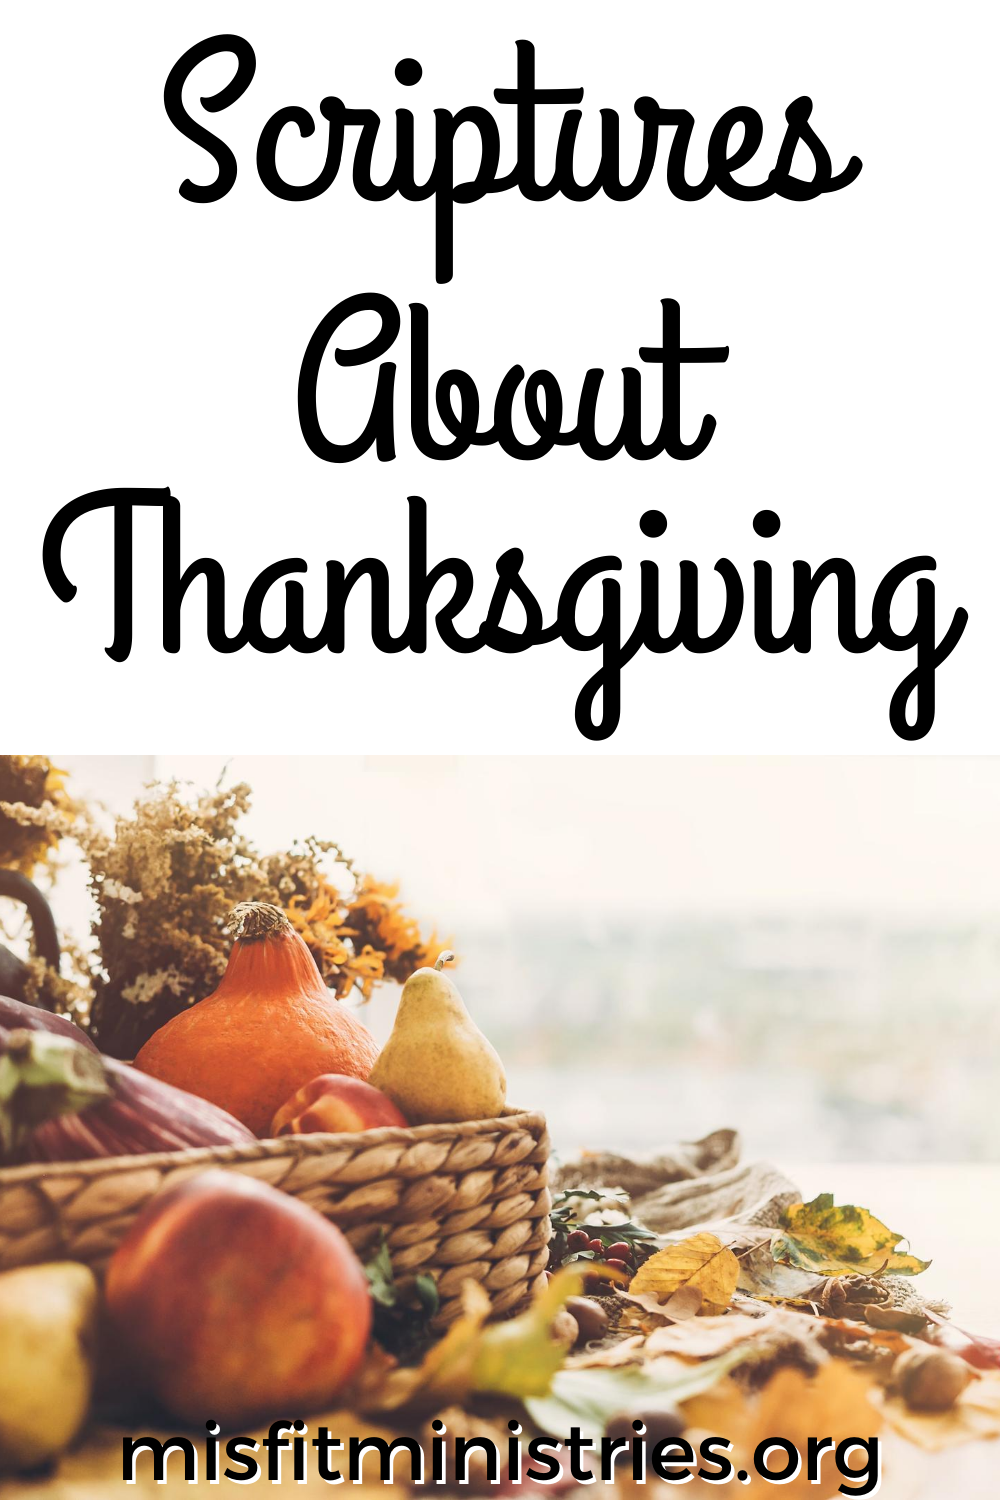 scriptures on thanksgiving